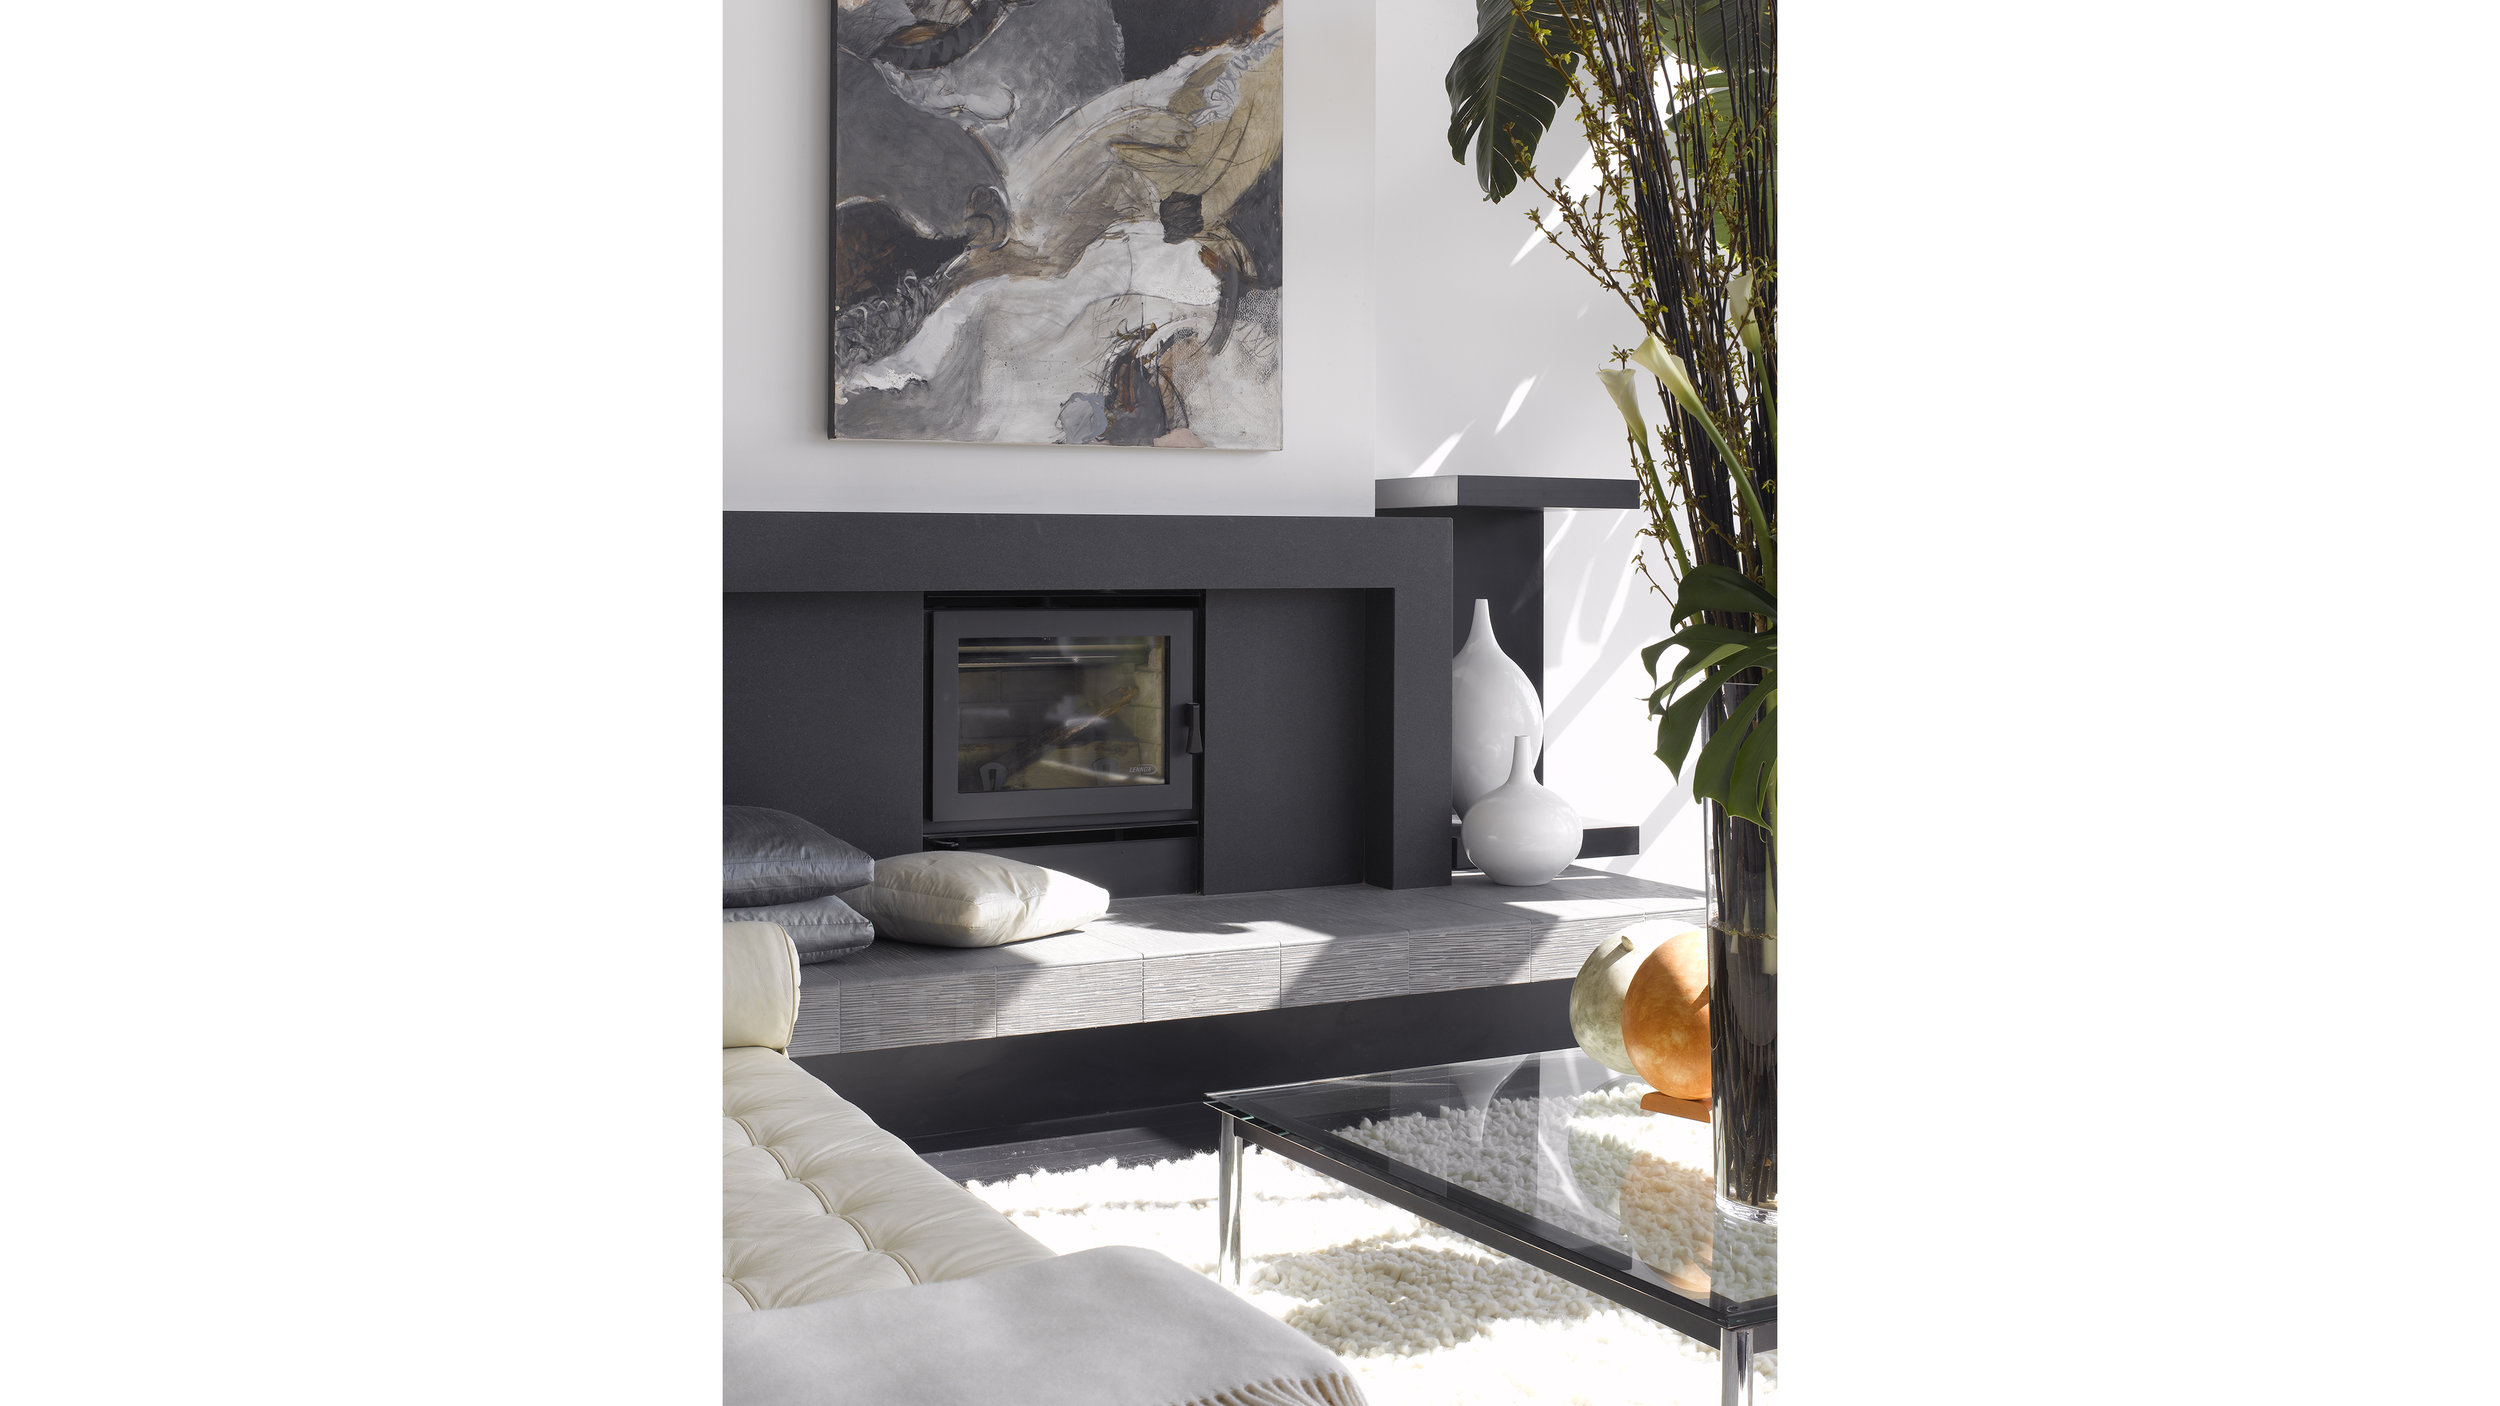 fireplace012-edit.jpg